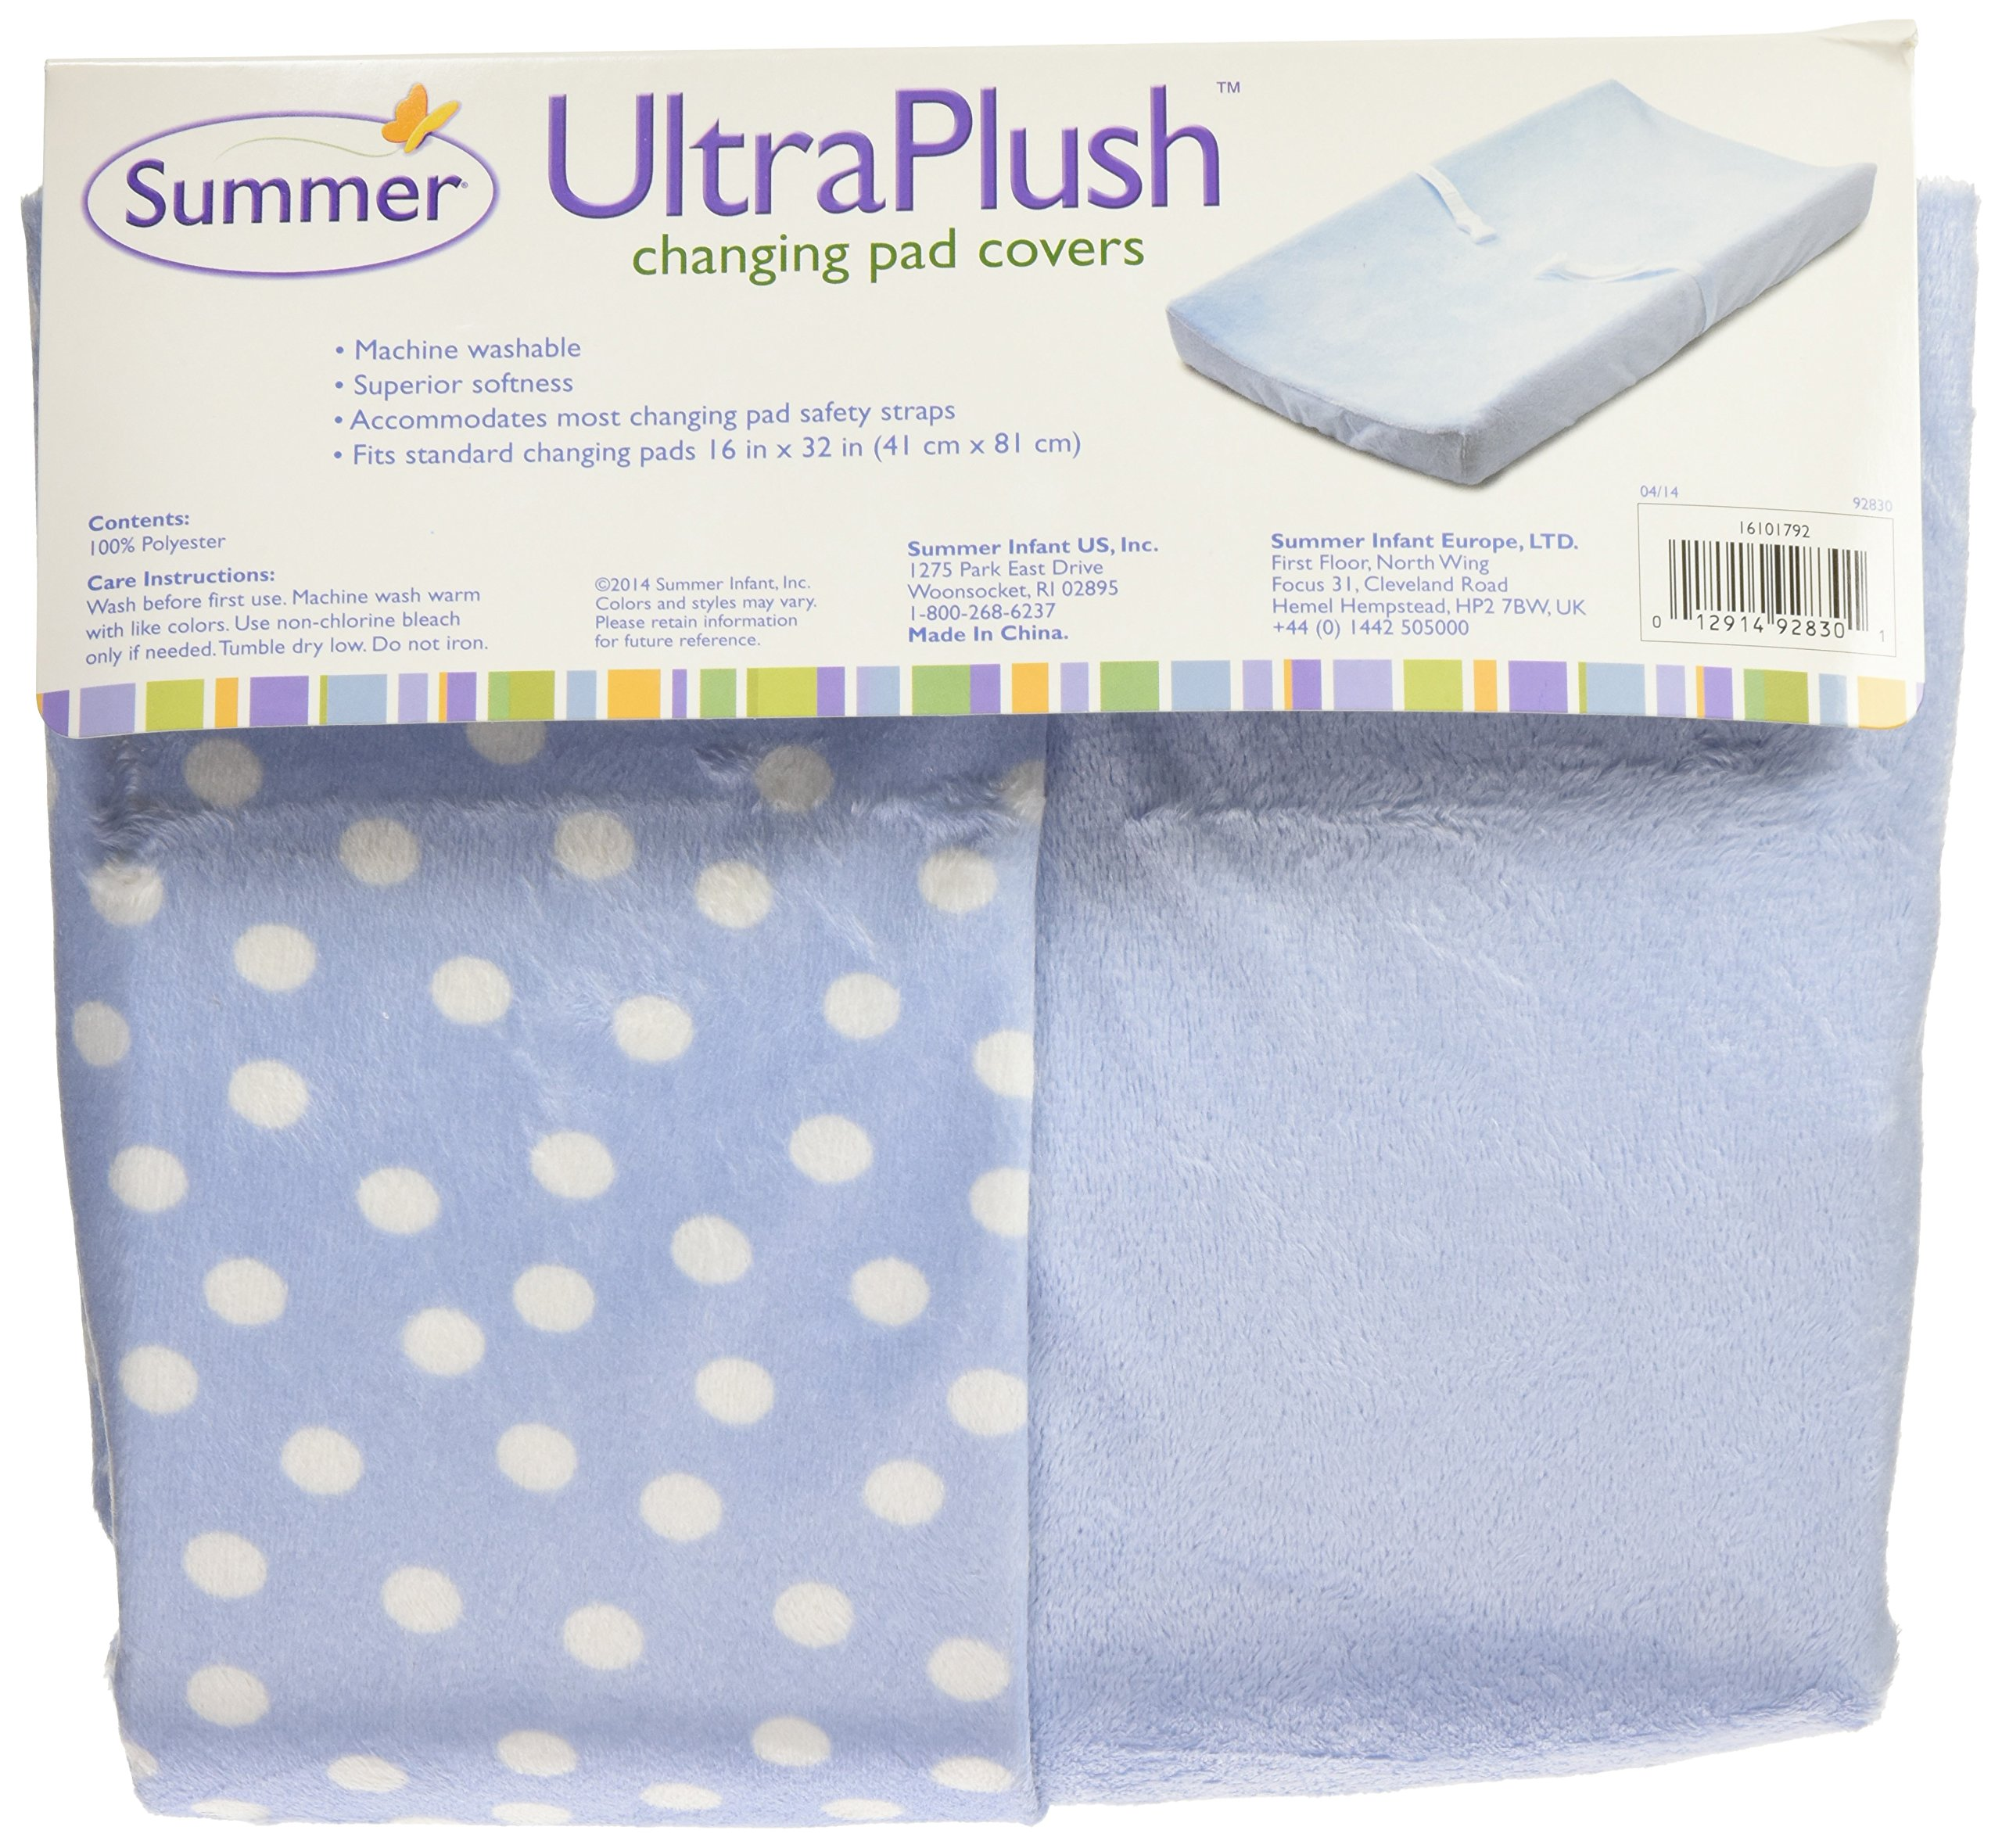 Summer Infant Ultra Plush Changing Pad Cover 2-Count, Blue & Polka Dot by Summer Infant (Image #5)